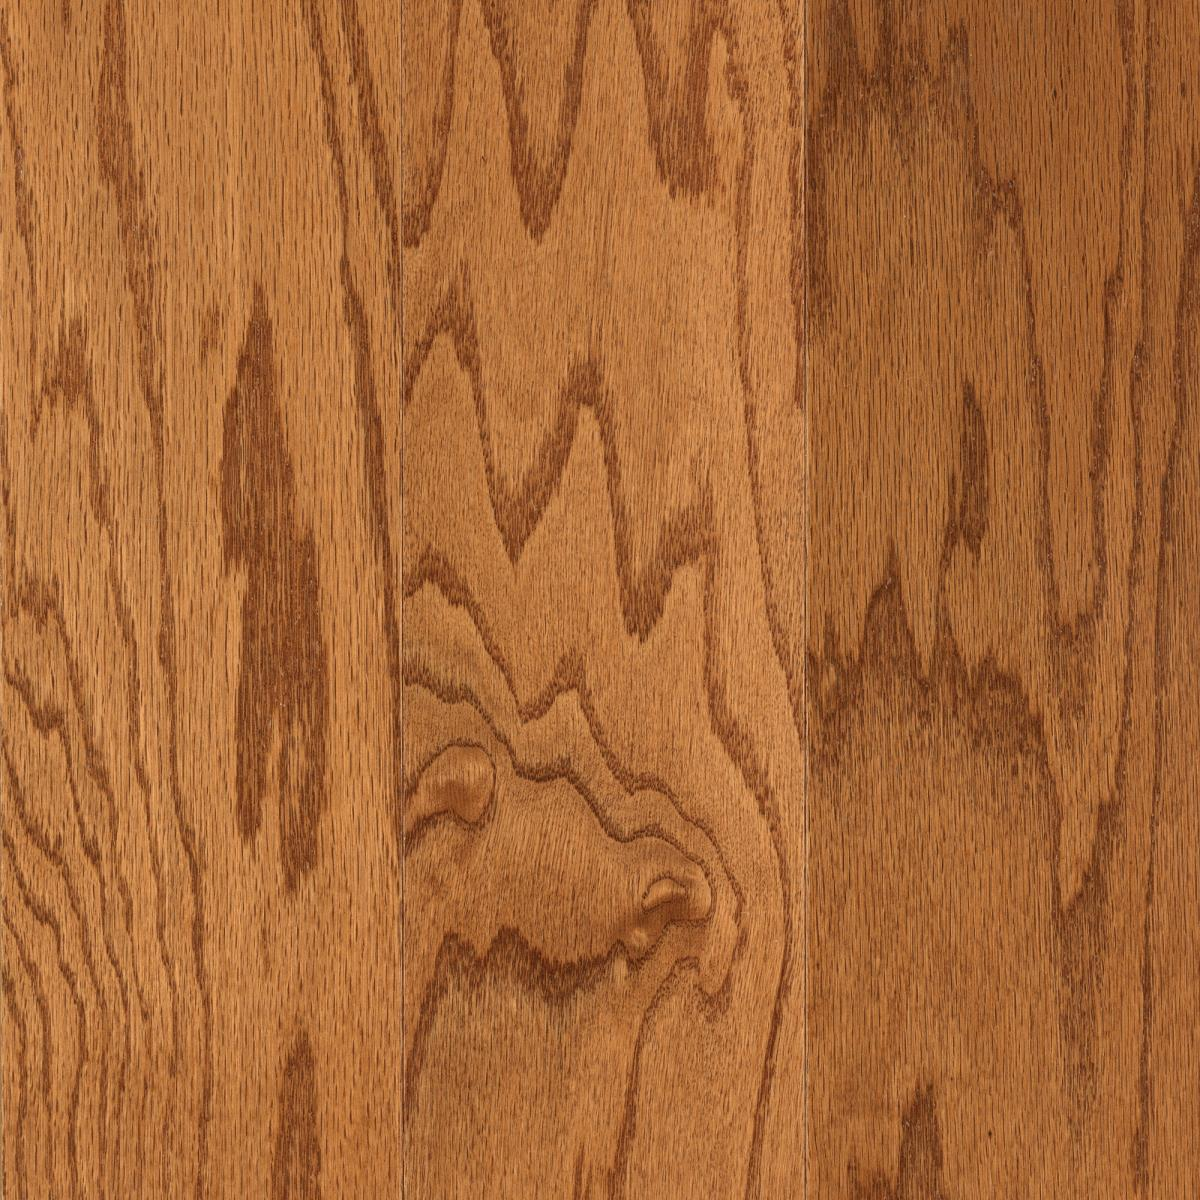 Buy mohawk engineered wood flooring for Purchase wood flooring